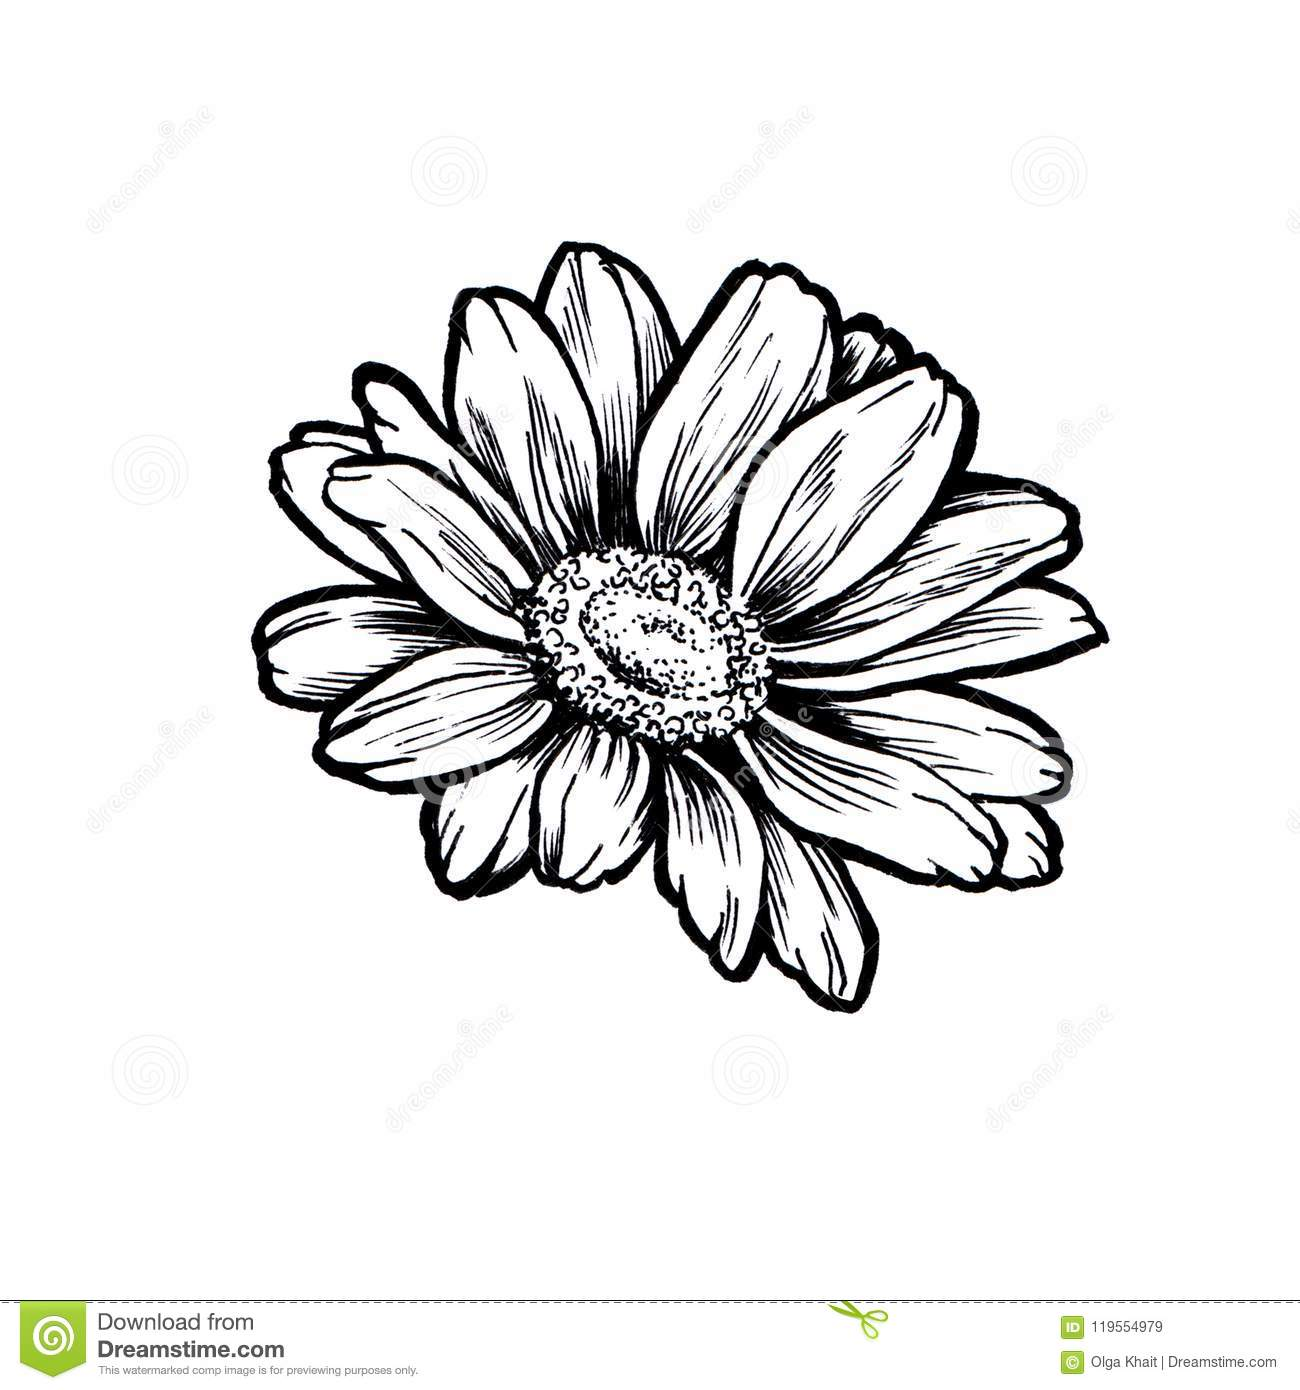 Ink Daisy Flower Line Graphic Sketch Stock Illustration